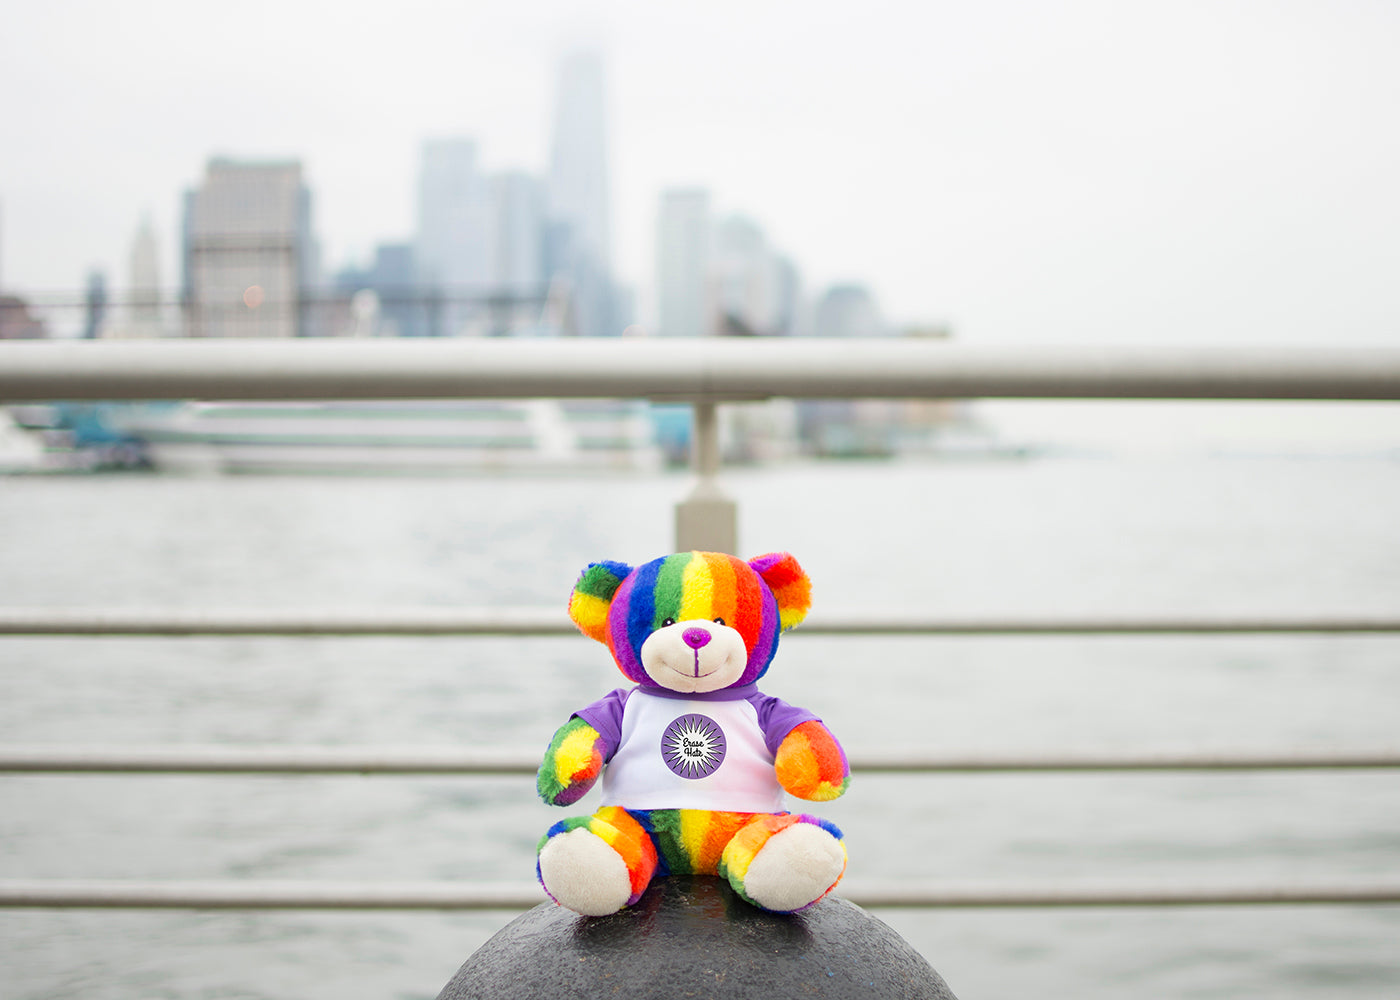 Bear Buggy®'s Totally Pride Bear photographed at the end of the Christopher St. Pier aka Pier 45 on the Hudson River where Marsha P. Johnson's body was found in July 1992.